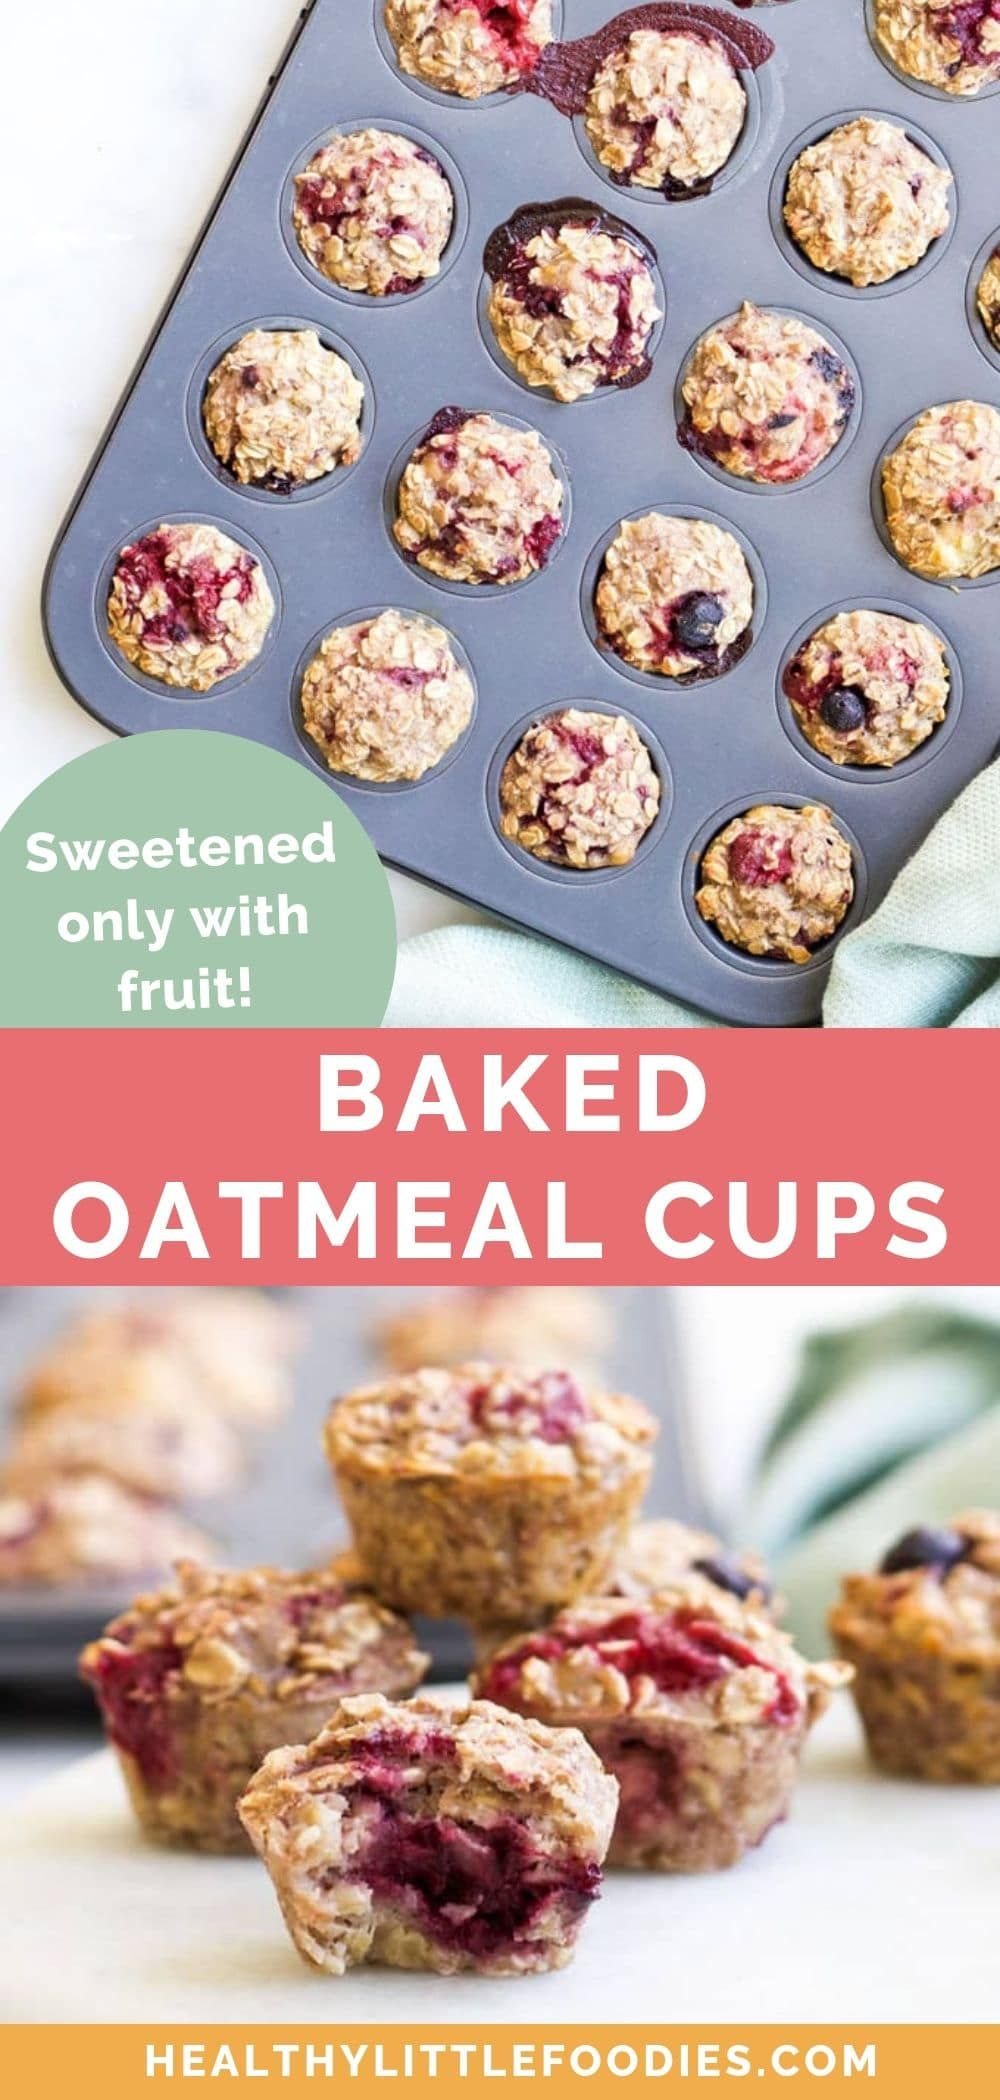 Baked Oatmeal Cups – Healthy Little Foodies